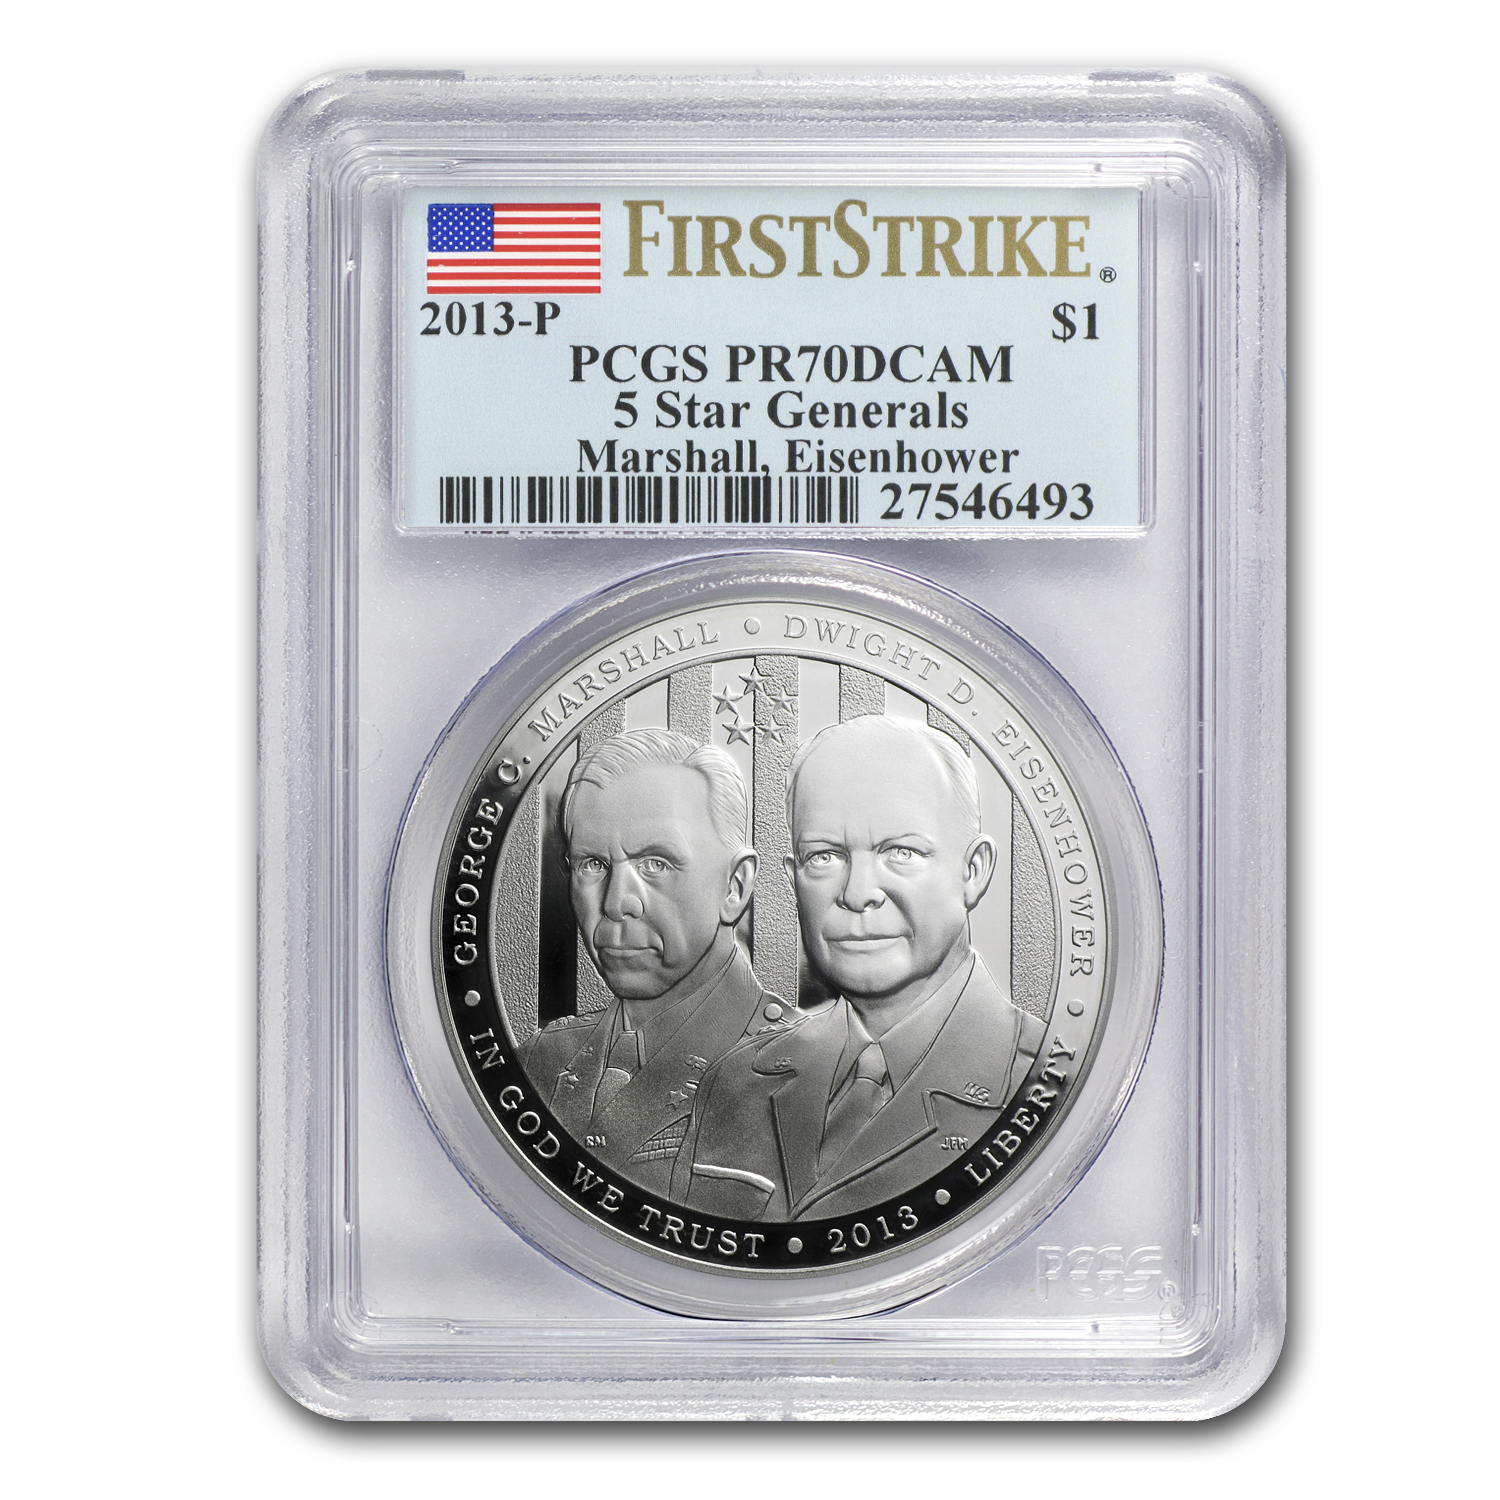 2013-P Five Star General $1 Silver Commem PR-70 PCGS (FS)